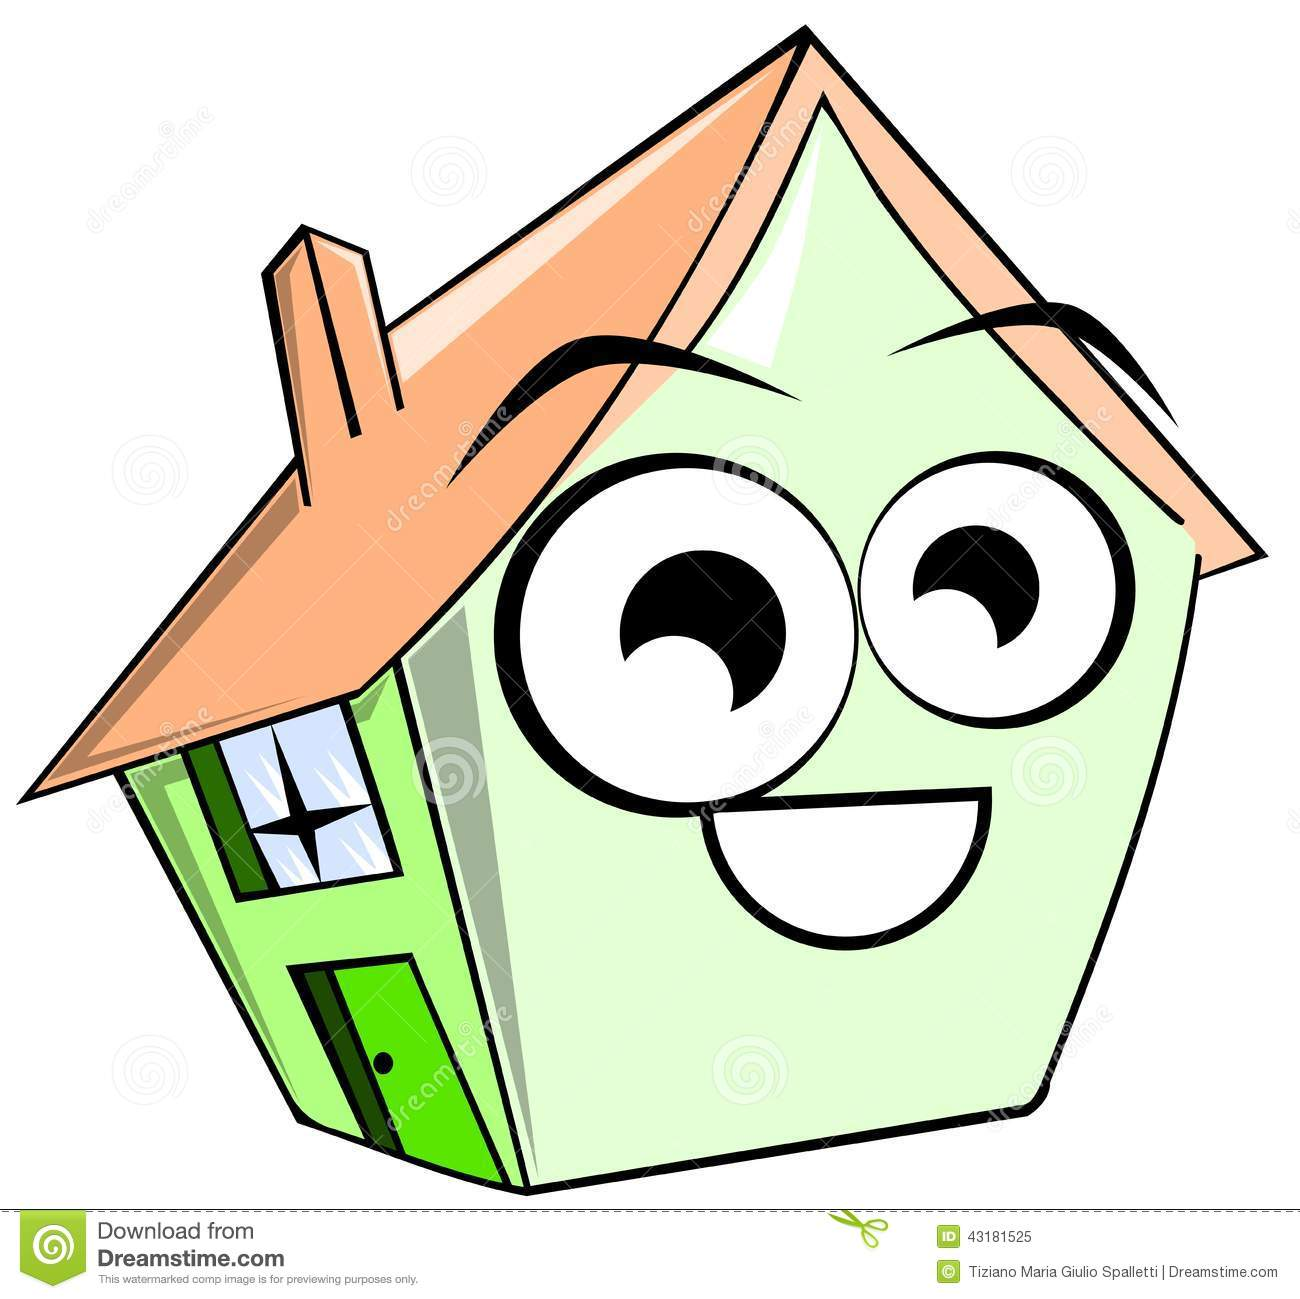 Illustration representing a house in a cartoon version. Image usable ...